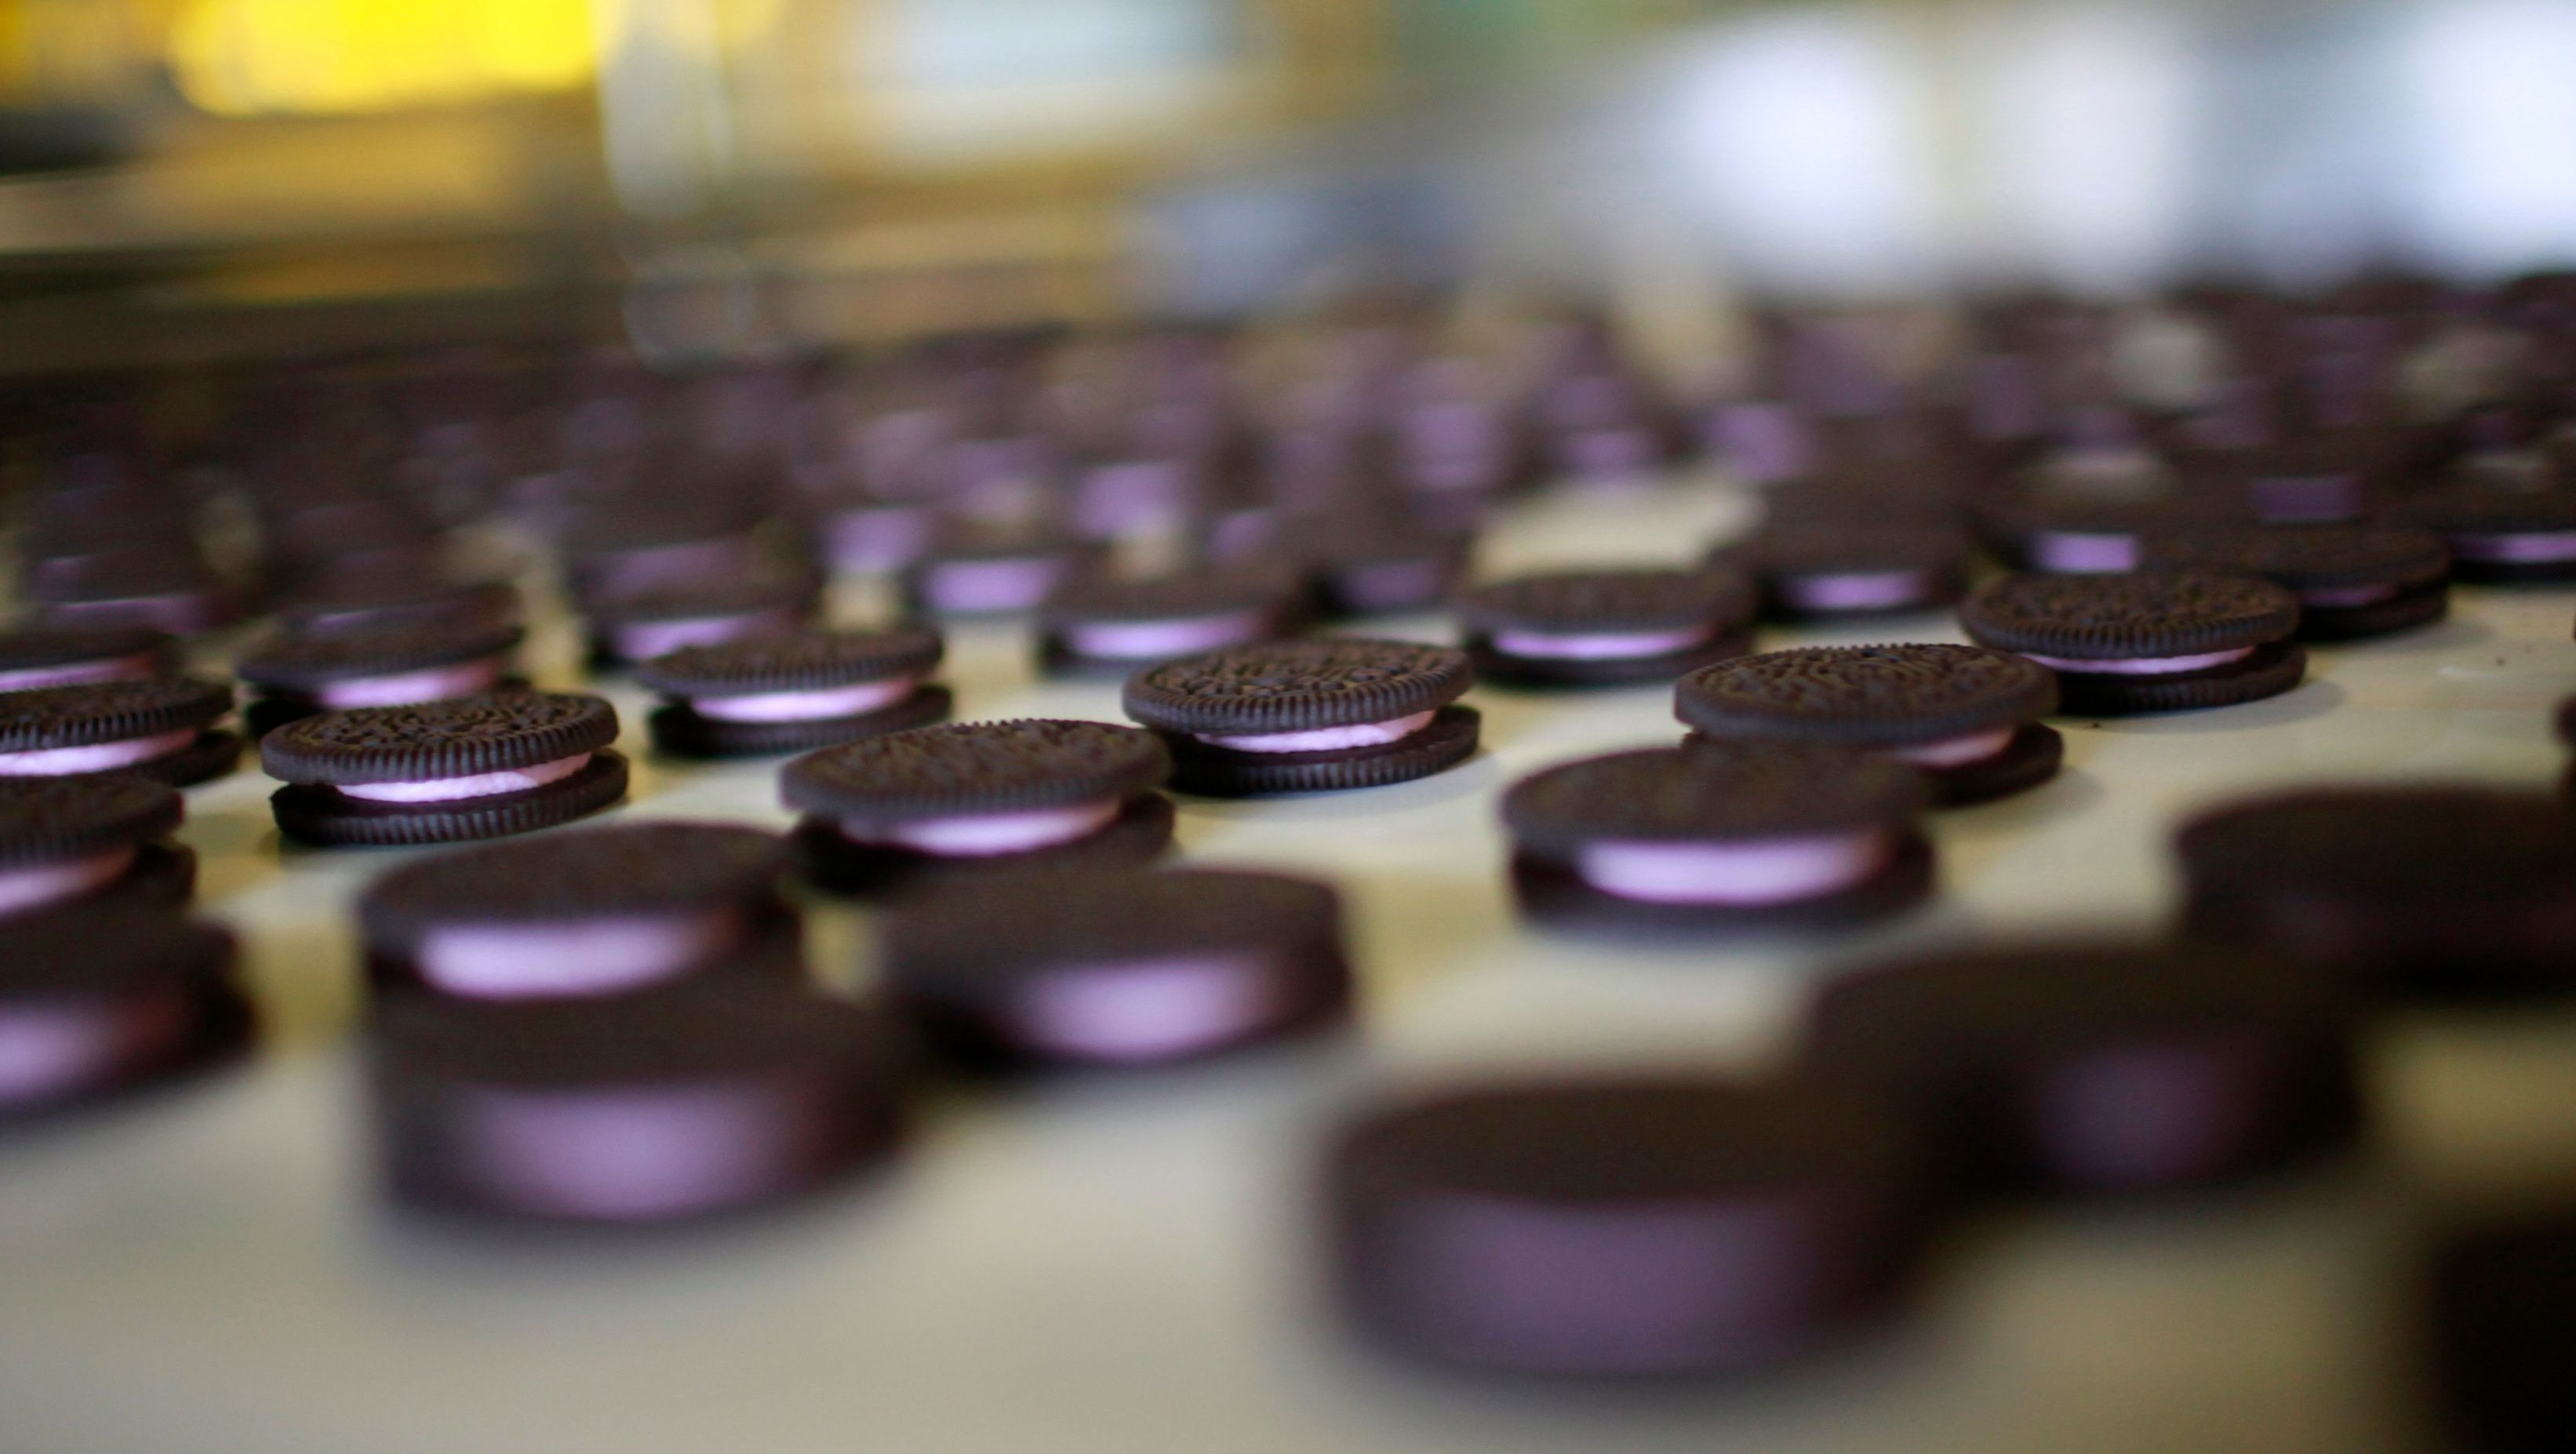 "Freshly-baked Oreo cookies pass along a conveyor belt at a Kraft Foods' factory in Suzhou, Jiangsu province May 30, 2012. Investment may be powering the Chinese economy but experiments like Oreo's gum cookie, a cookie with a glob of gum sandwiched neatly between a pair of Oreo's iconic dark chocolate biscuits instead of the creamy white ""stuff"", which for better or worse never made it to store shelves, are a reminder that consumption is rising sharply. That means it is vital for food companies to get the right products into the market, particularly with demand dimming in the United States and Europe. Picture taken May 30, 2012."